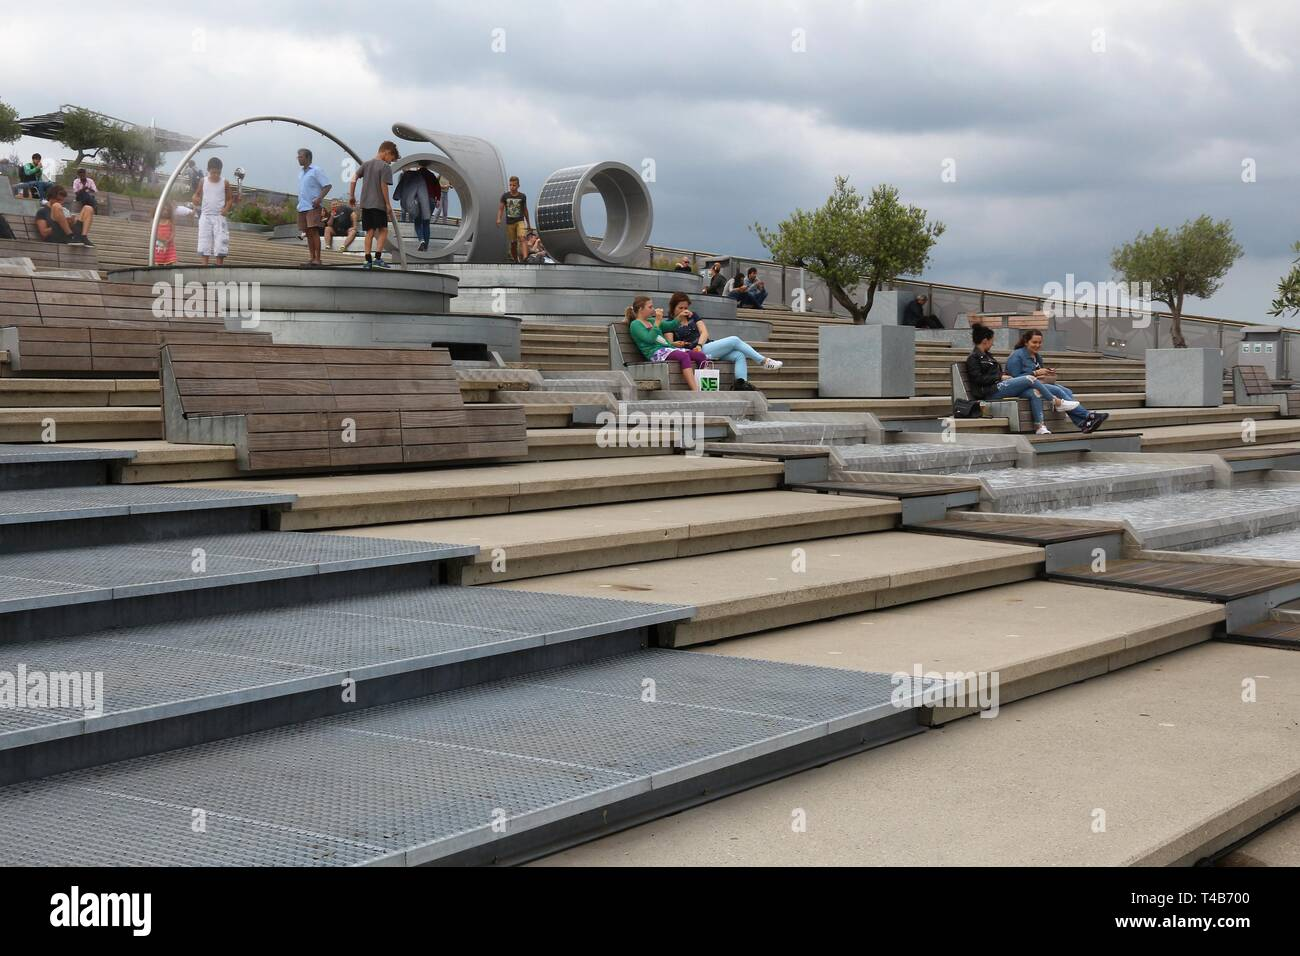 Amsterdam Netherlands July 8 2017 People Visit The Roof